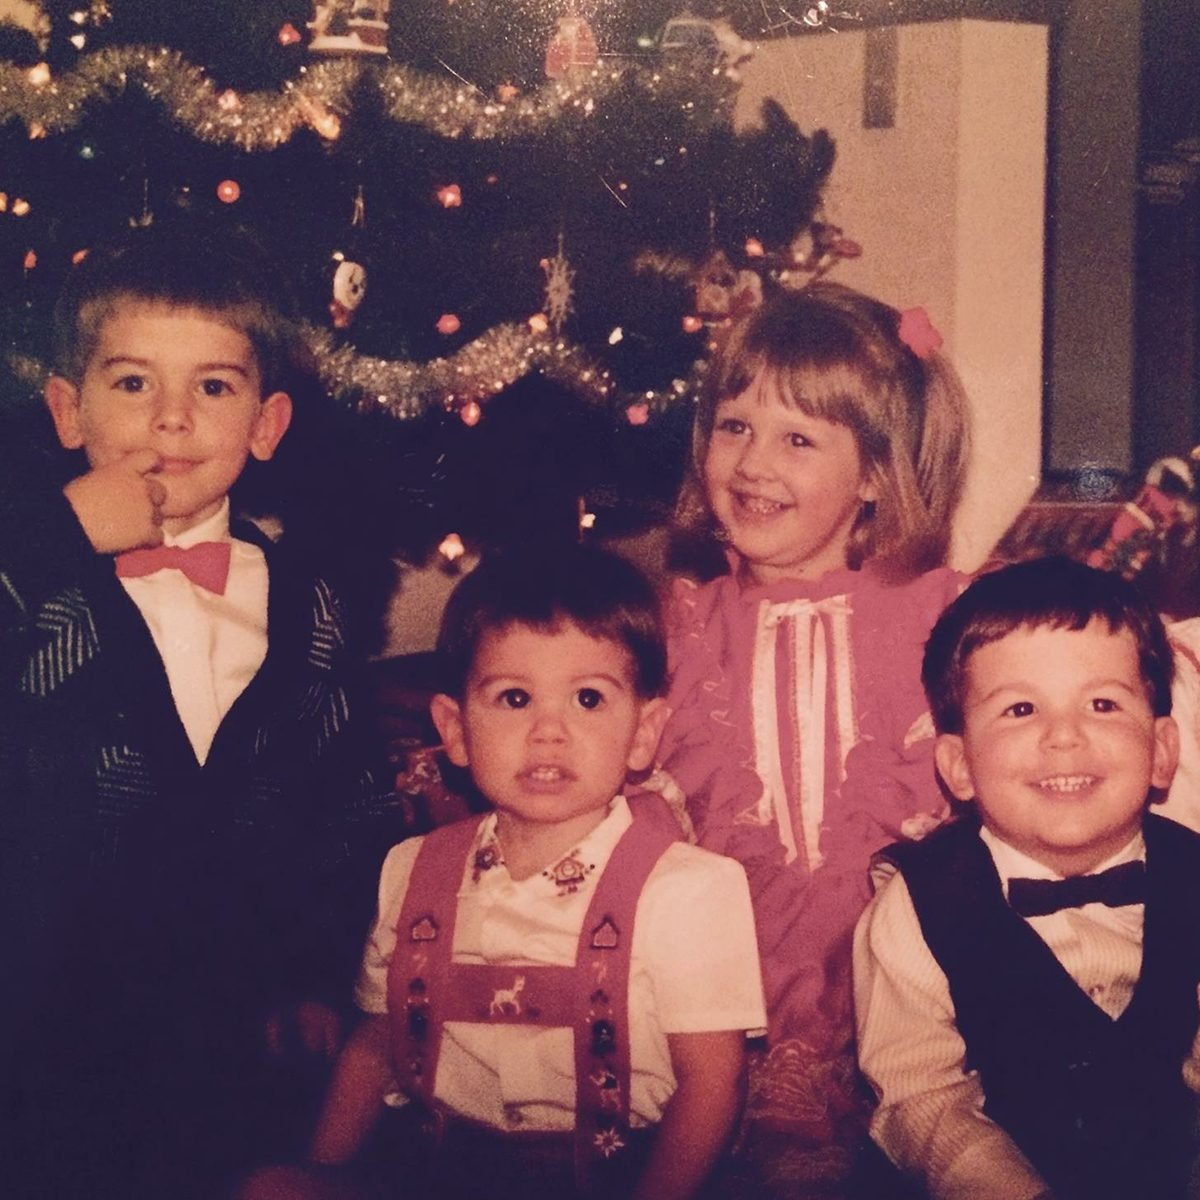 Smiling children all dressed in their Christmas best